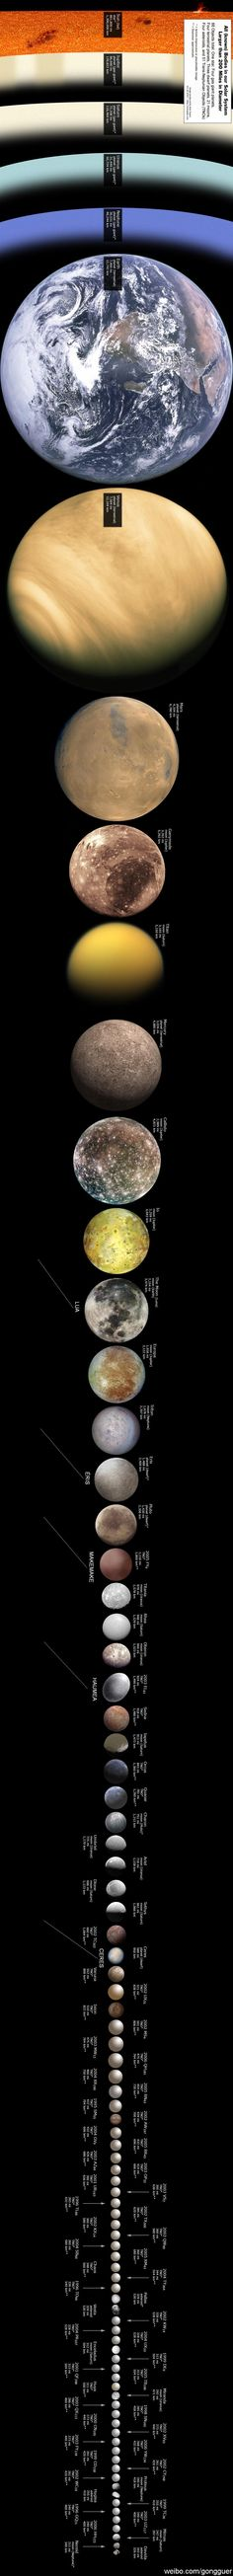 Every object in the solar system larger than 200 miles in diameter from largest to smallest, top to bottom.